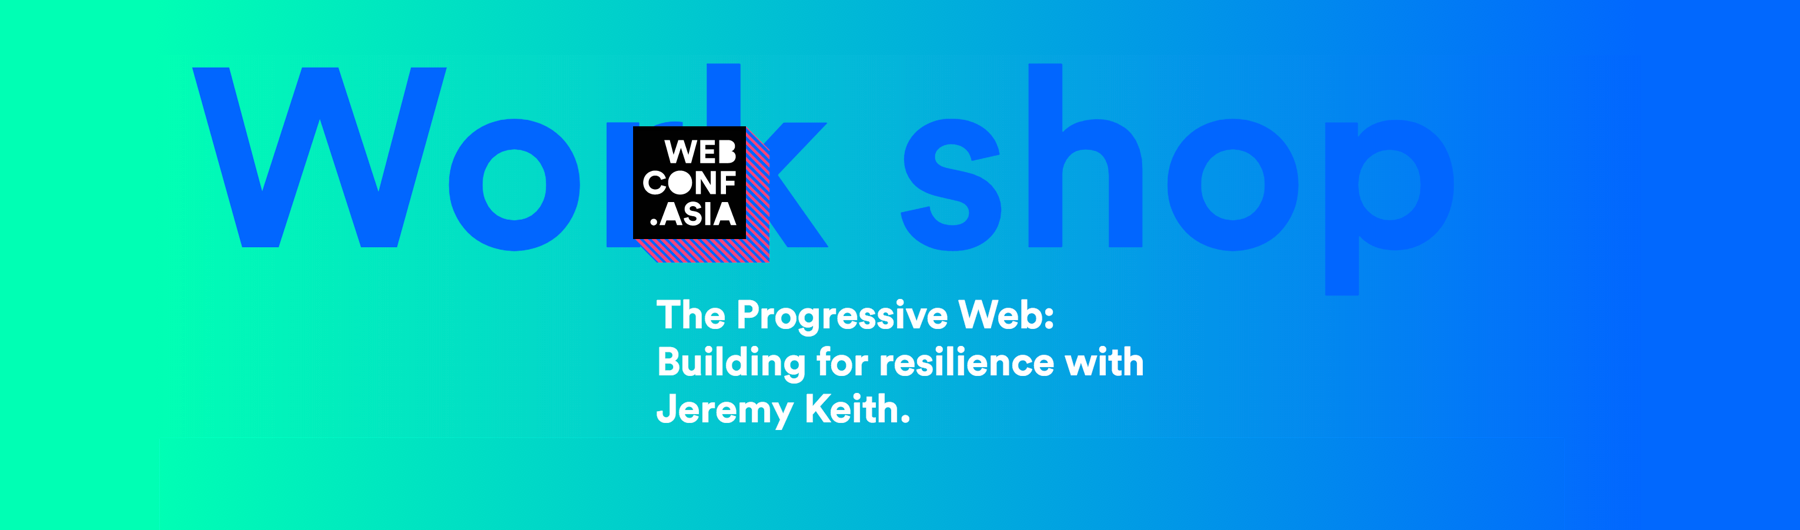 Workshop: The Progressive Web with Jeremy Keith